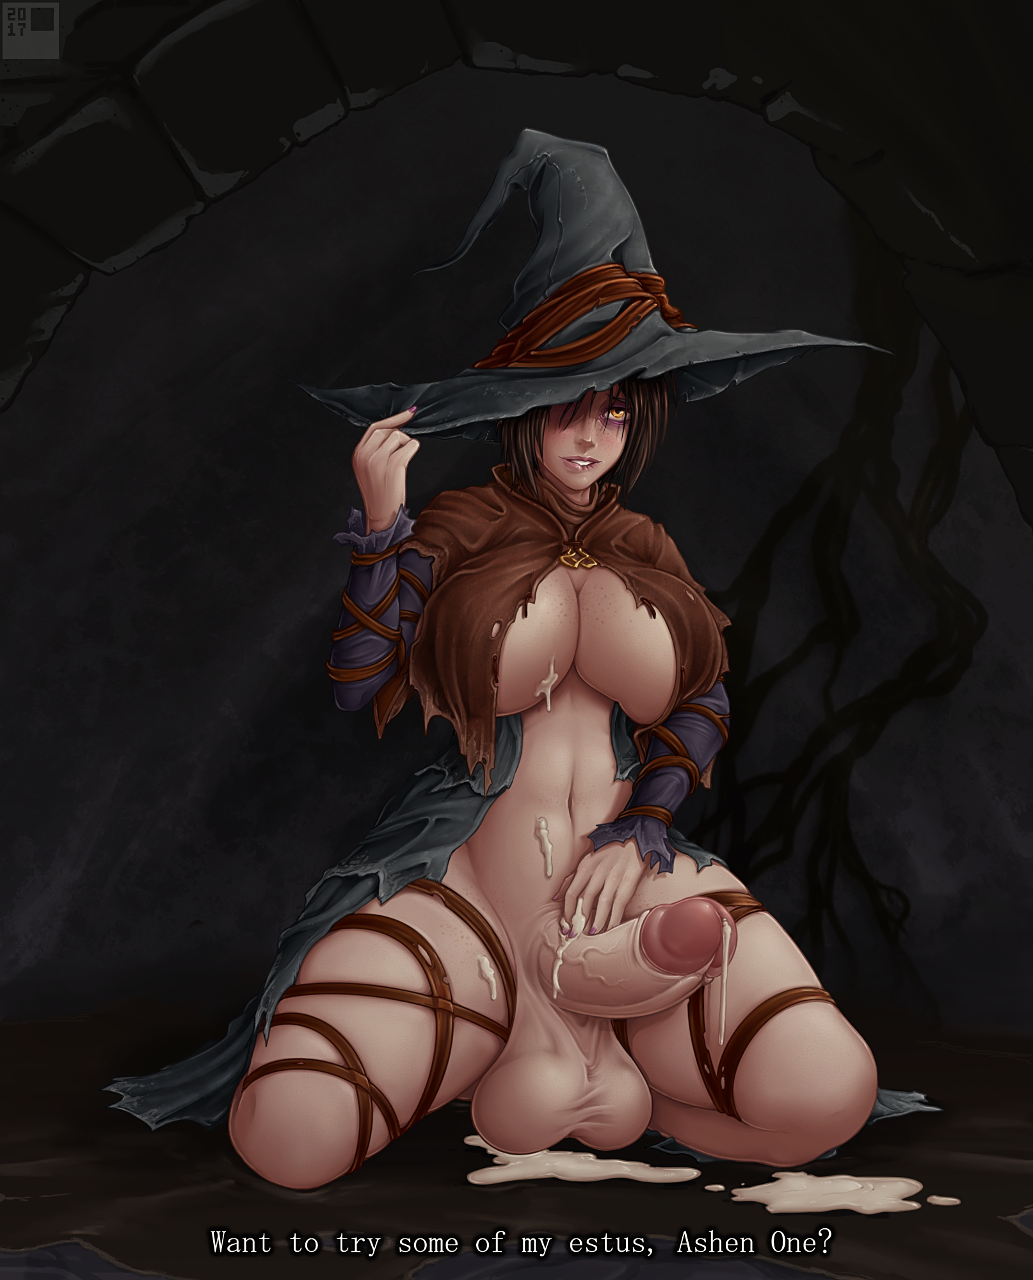 witch 3 hat souls dark Pink and white striped panties